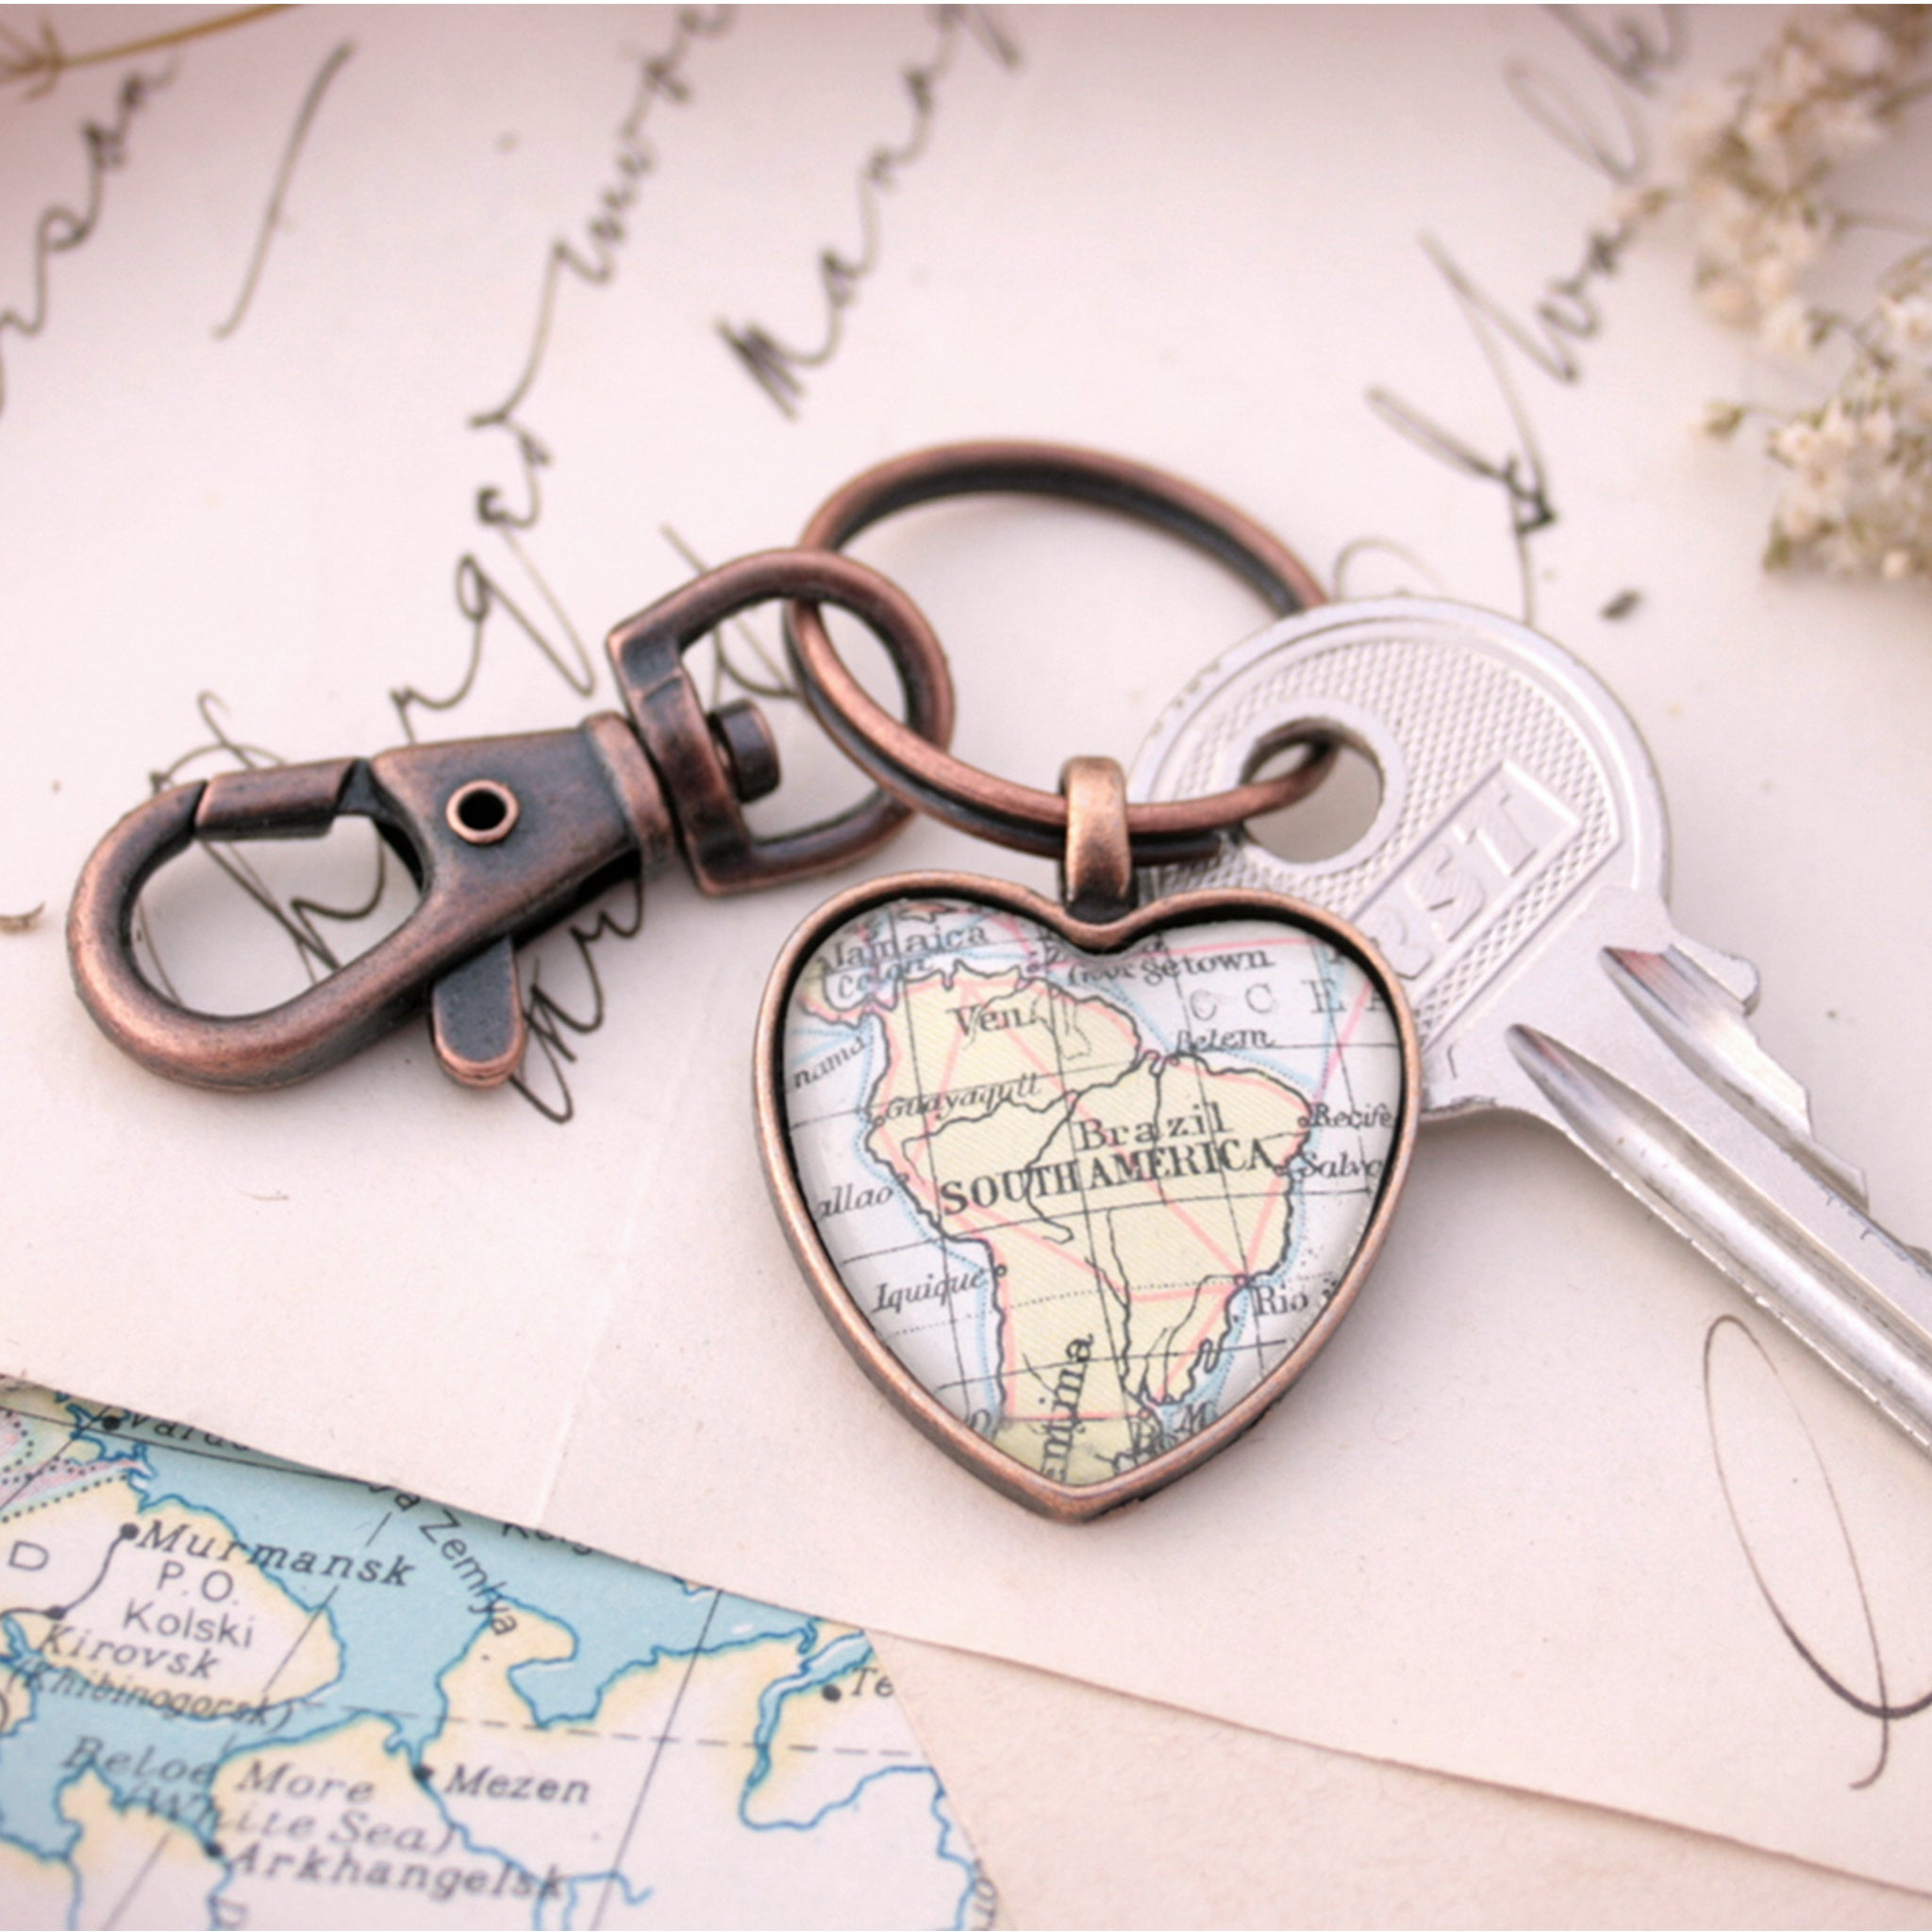 Heart shaped keychain in copper tone featuring map of South America